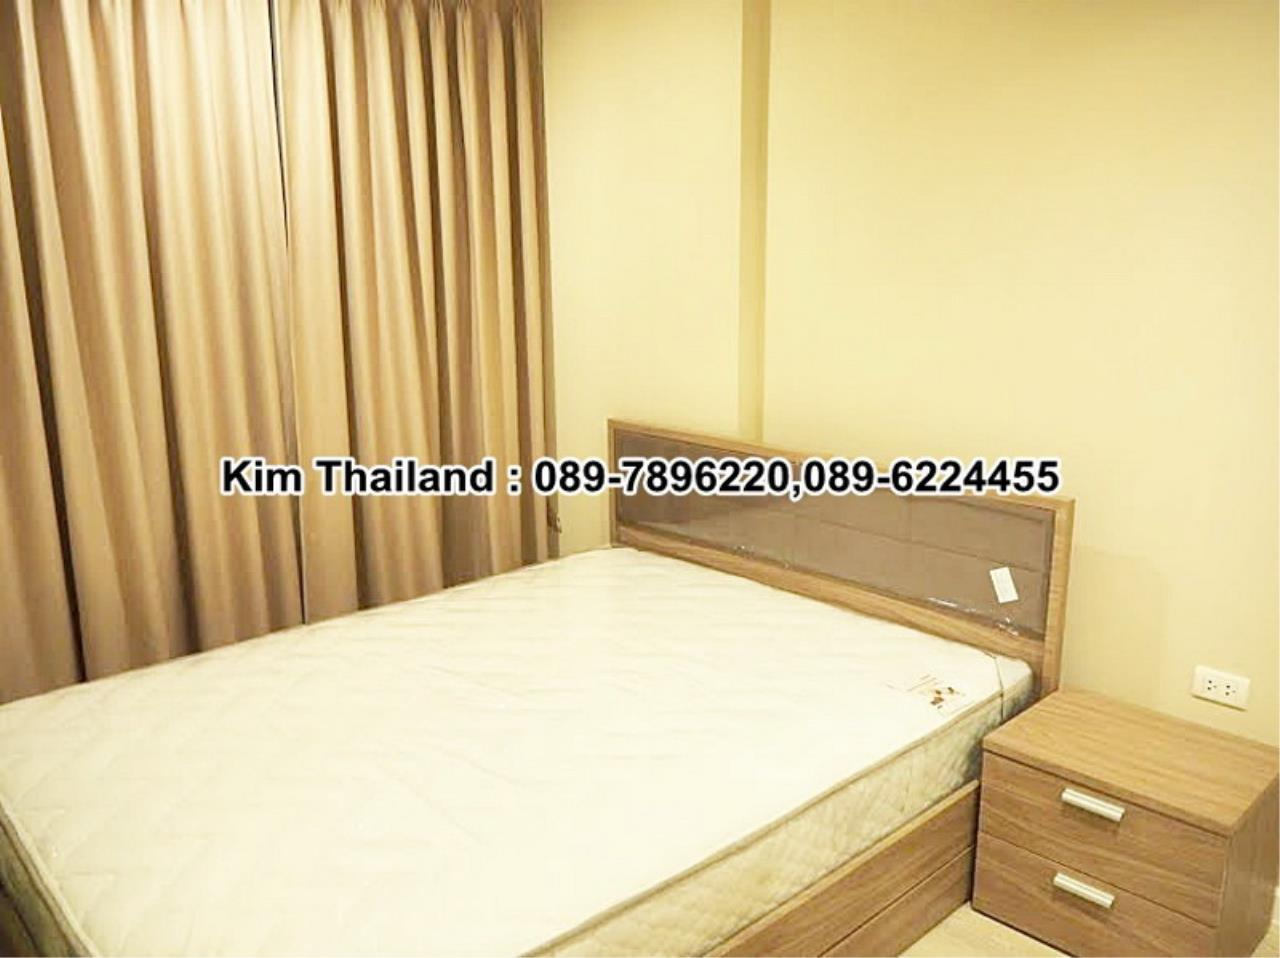 BKKcondorental Agency's For rent, Condo Metroluxe Rama 4., Area 28 sq.m. 1 bedroom. Rental 15,000 THB per month. 4